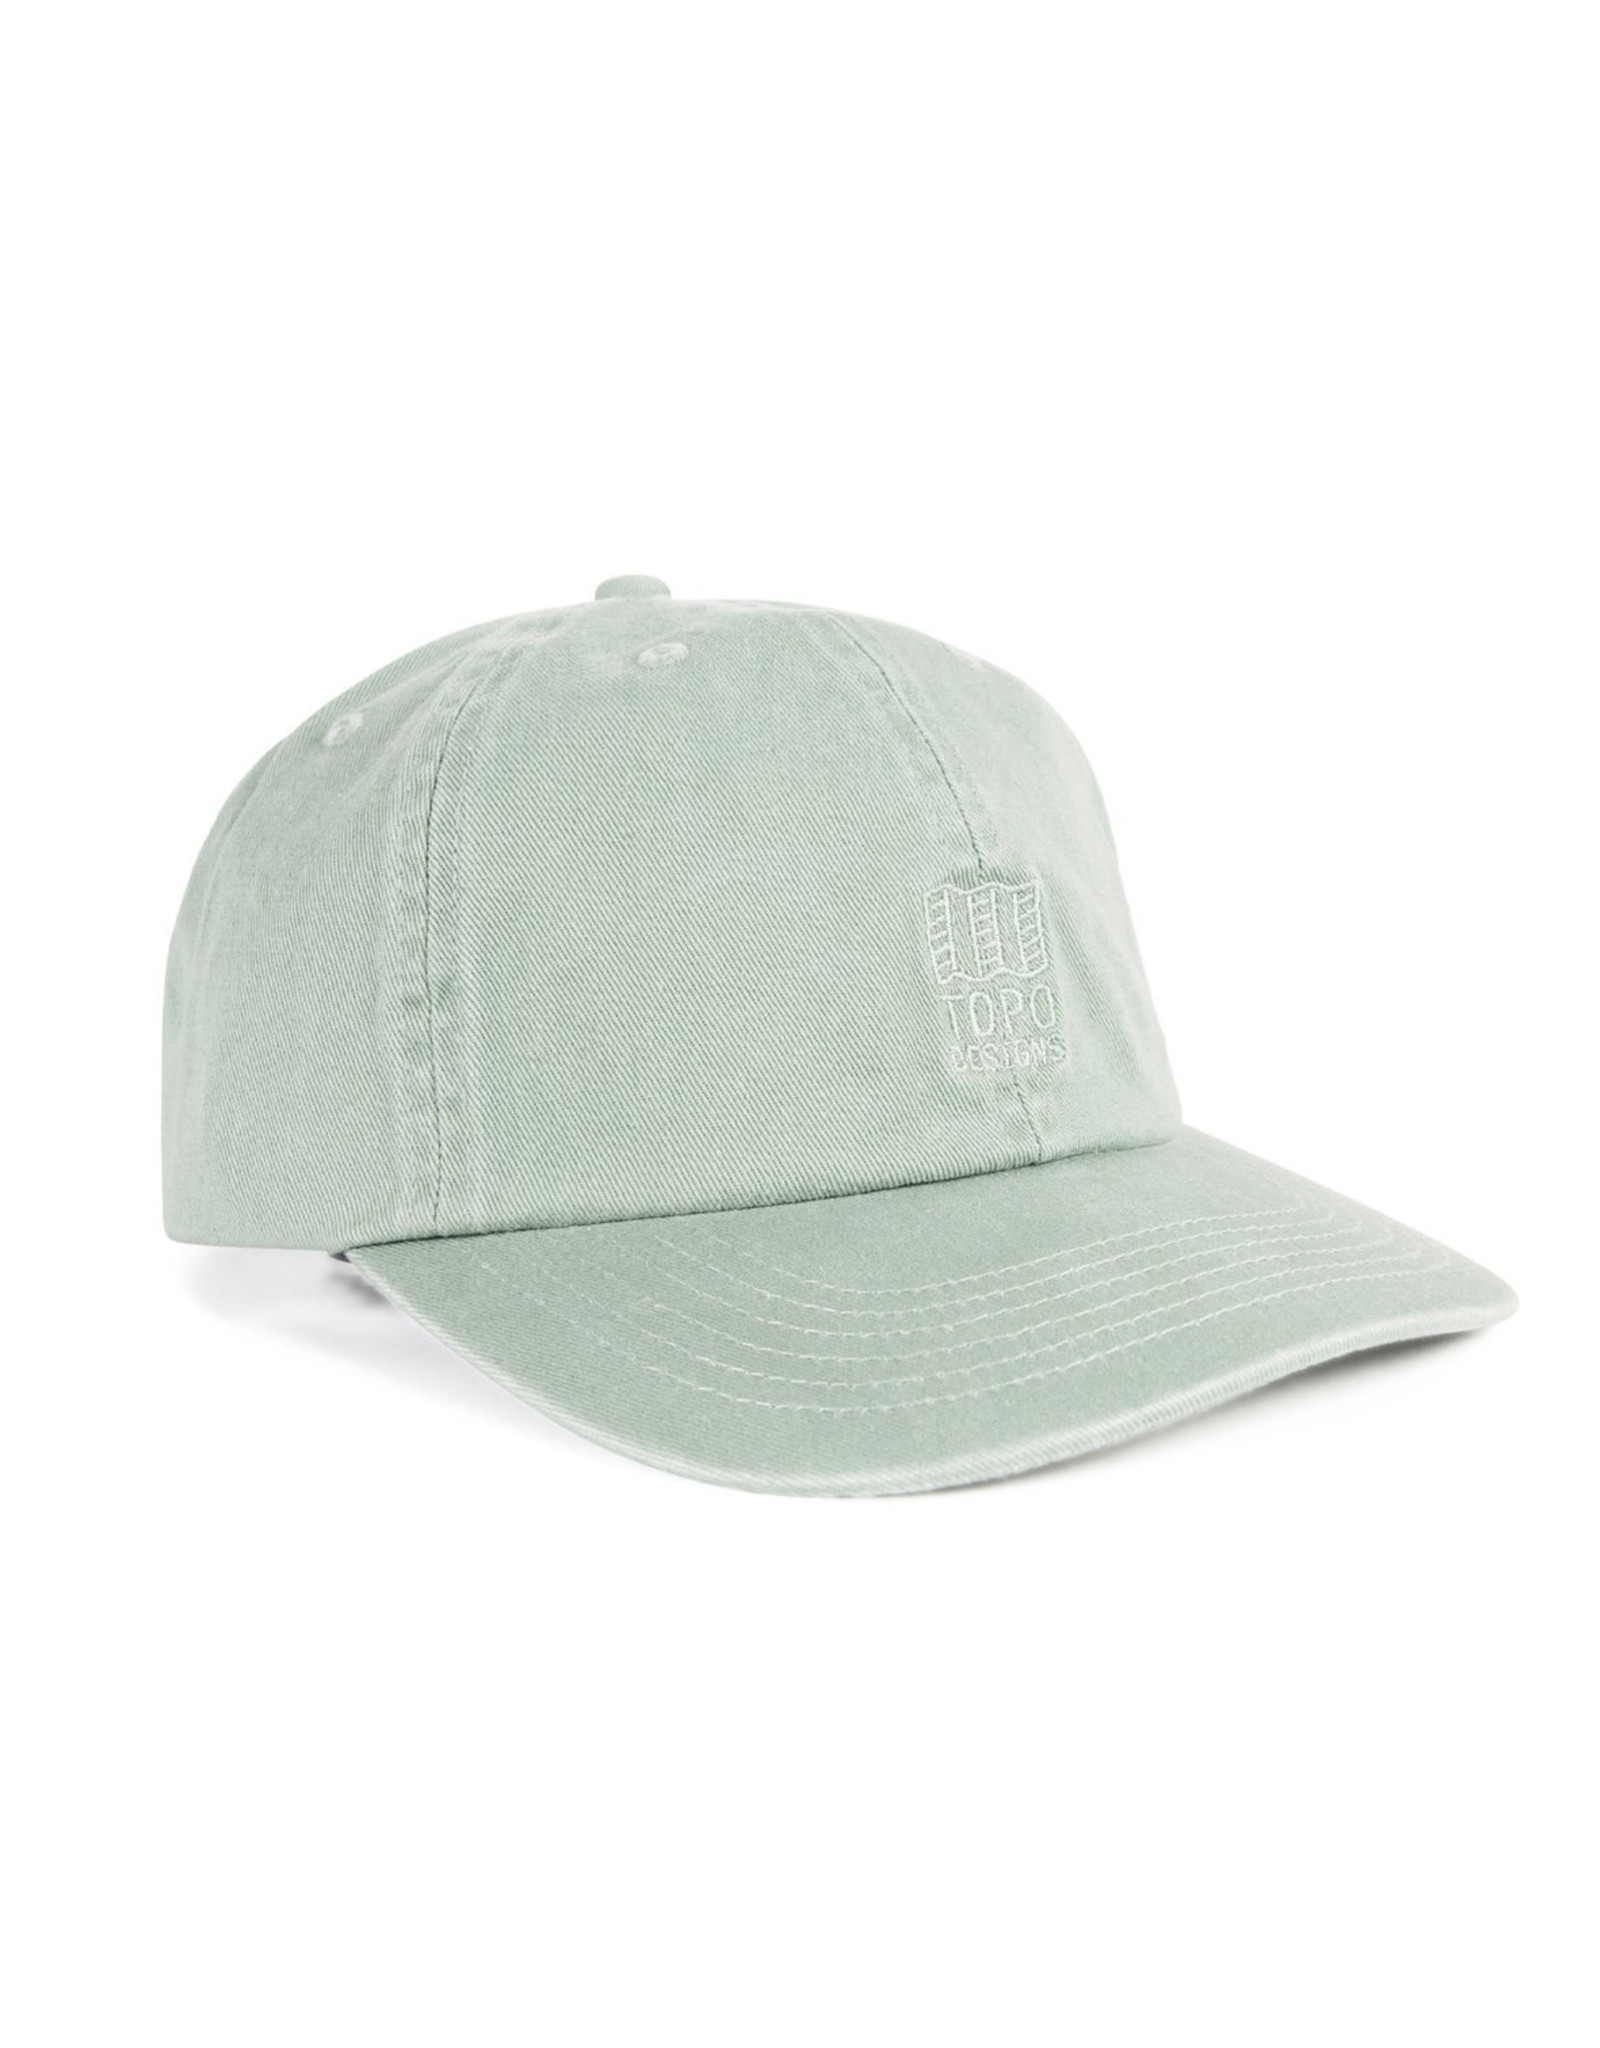 Topo Mountain Ball Cap